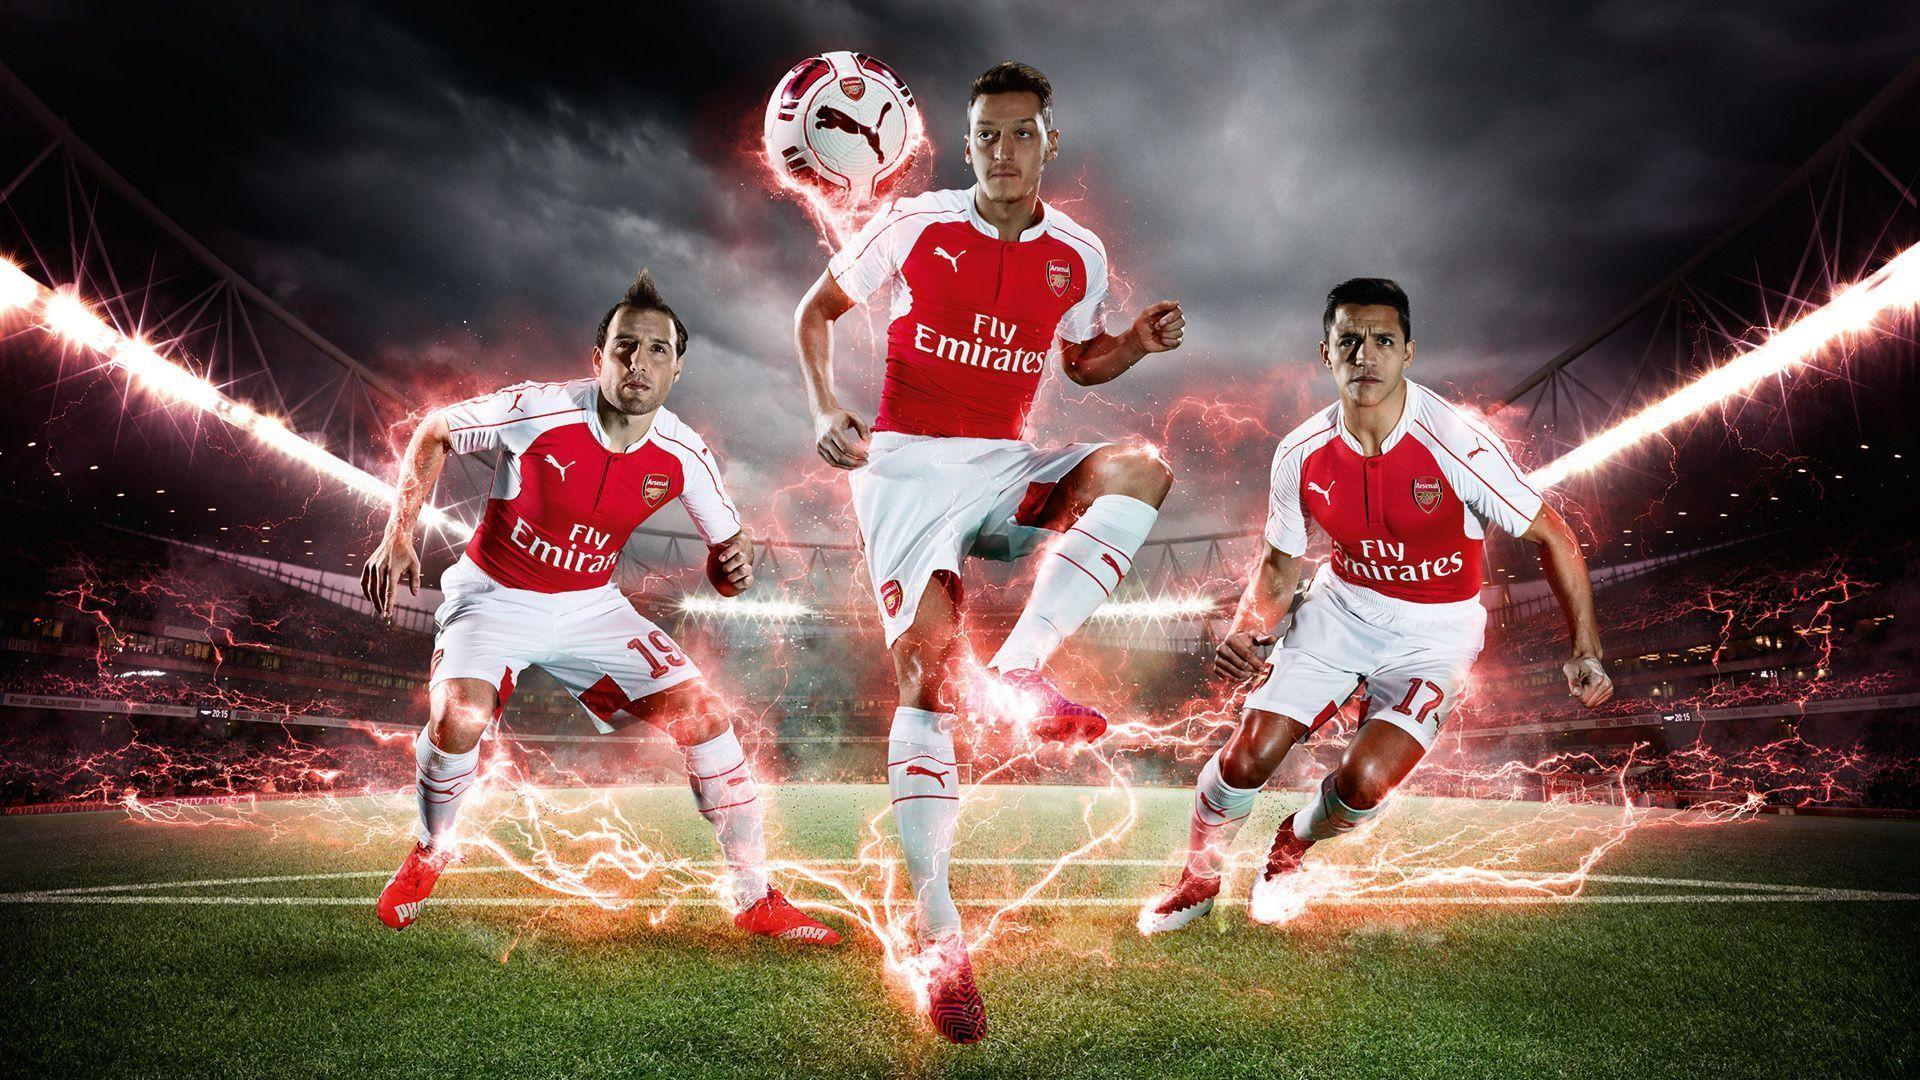 Arsenal Players Wallpapers Top Free Arsenal Players Backgrounds Wallpaperaccess